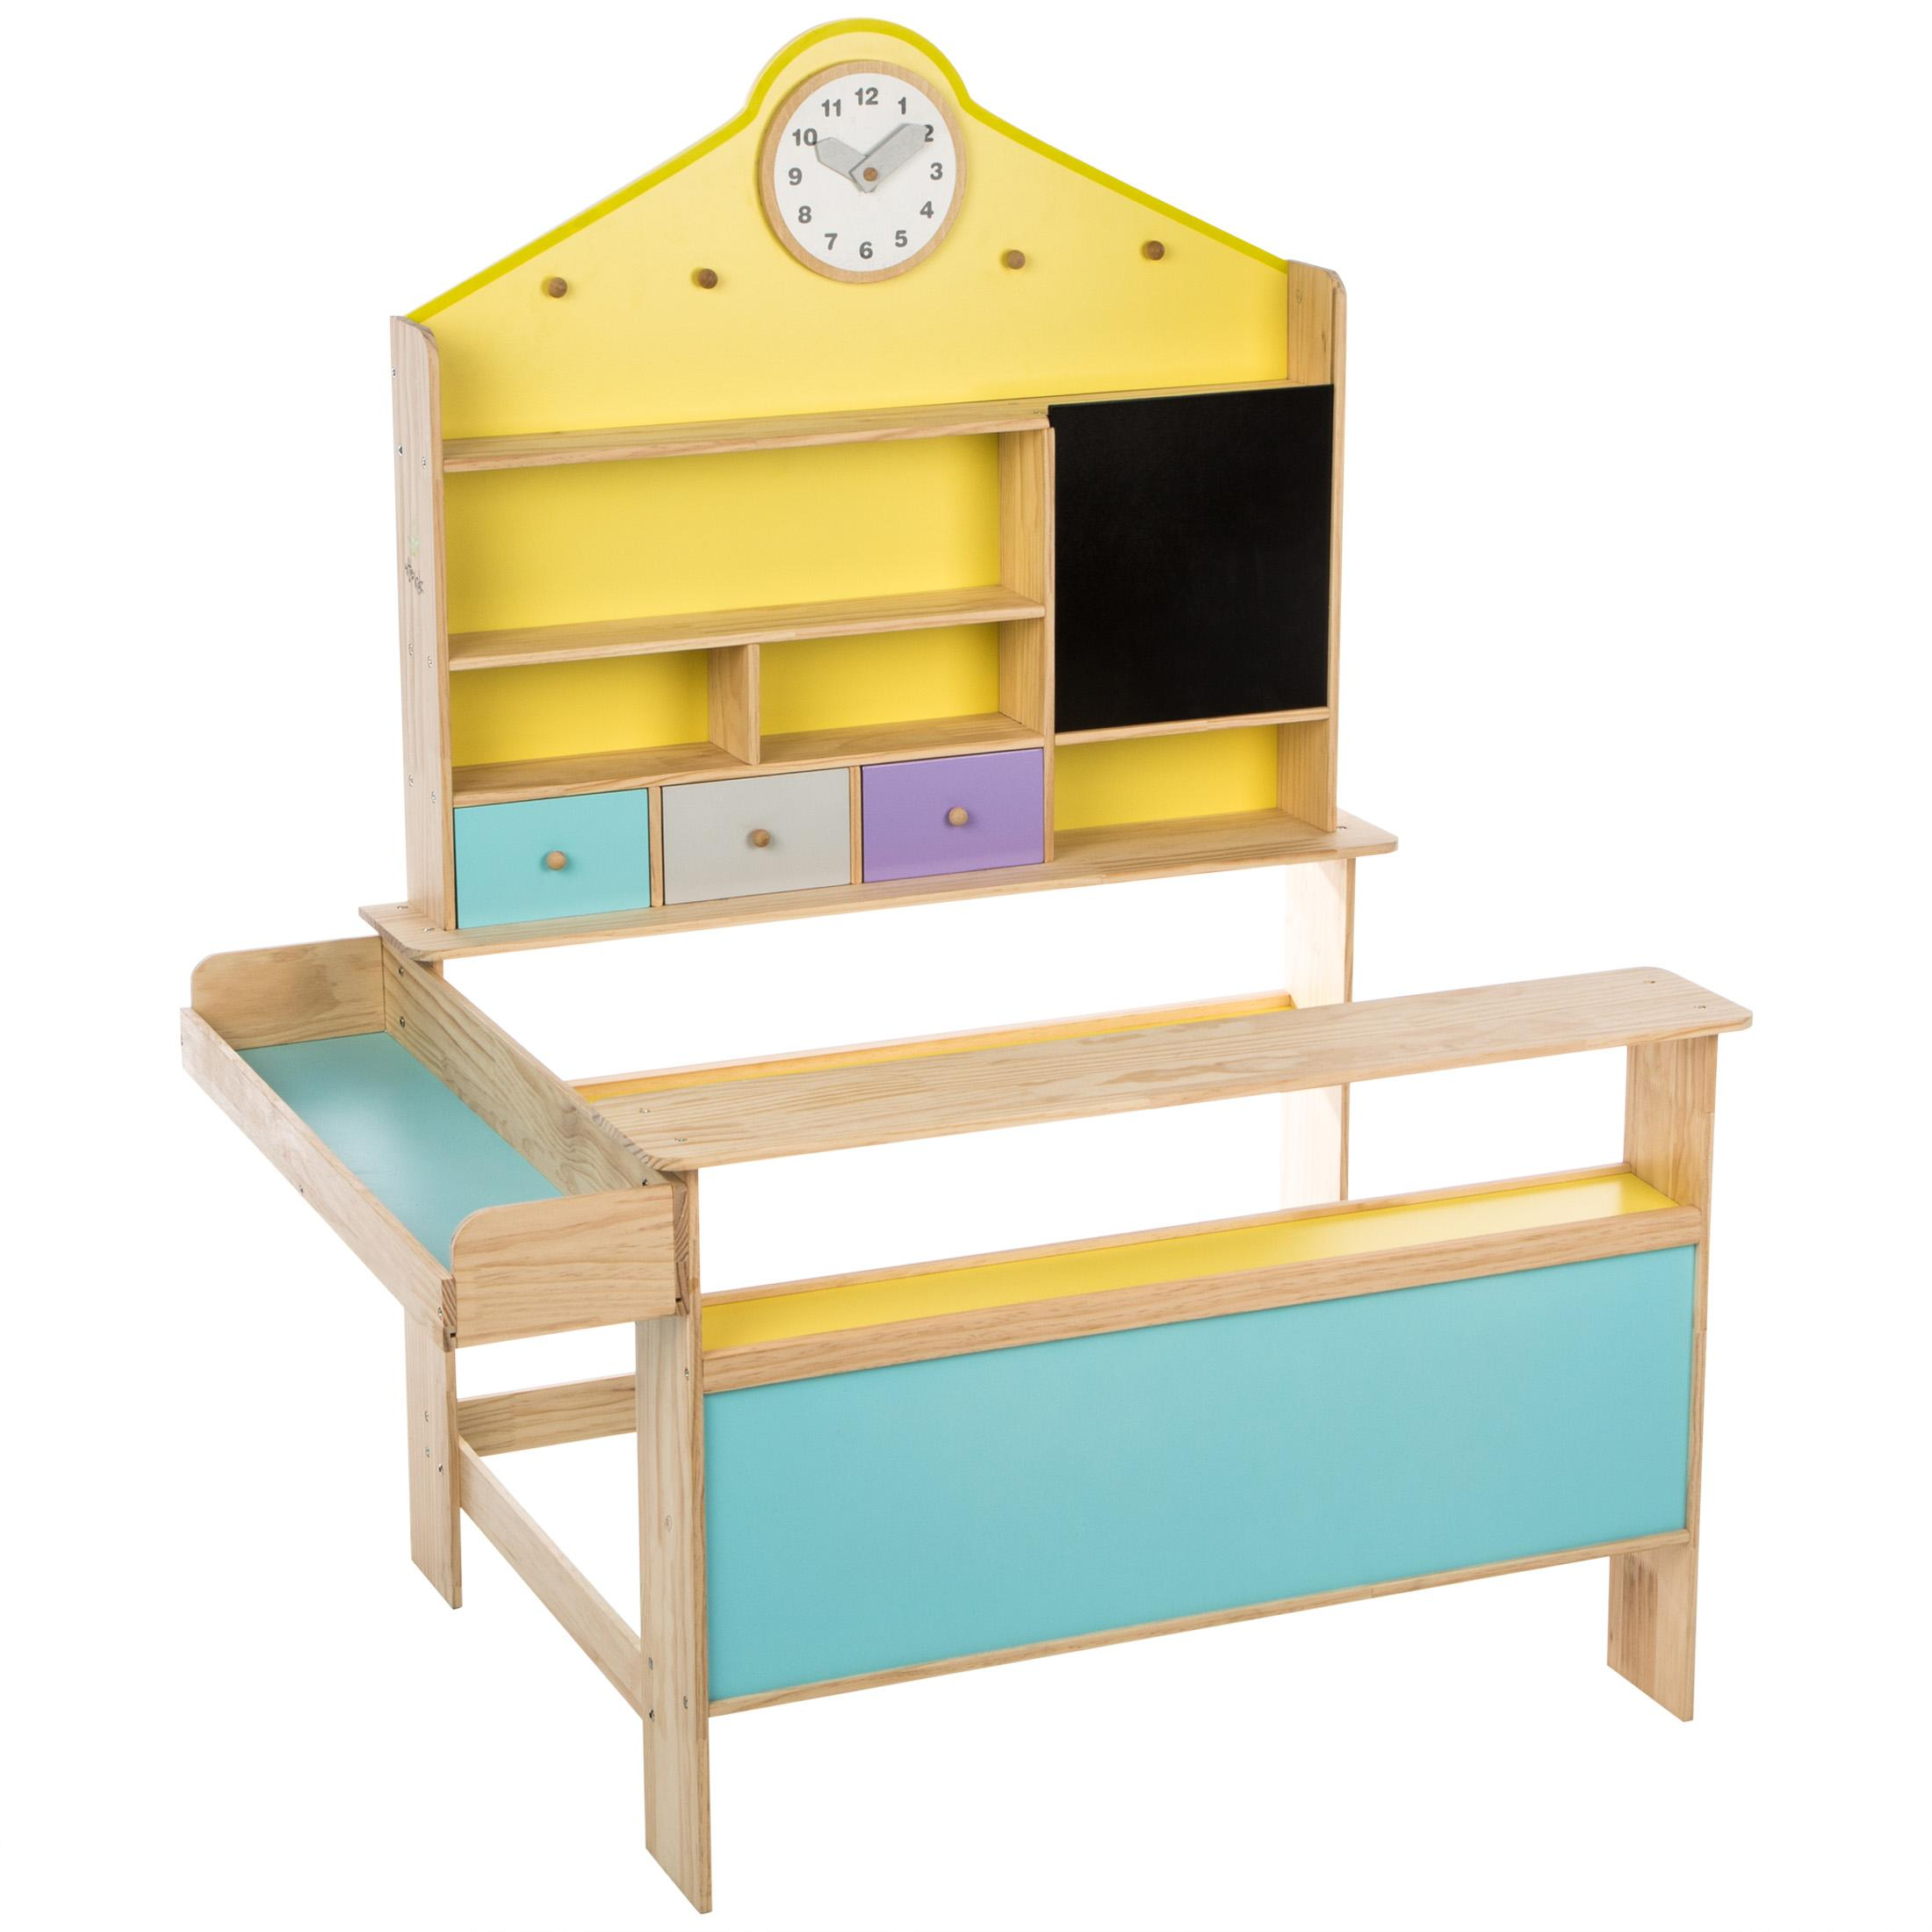 ultrakidz kaufladen aus massivem holz spielzeug. Black Bedroom Furniture Sets. Home Design Ideas